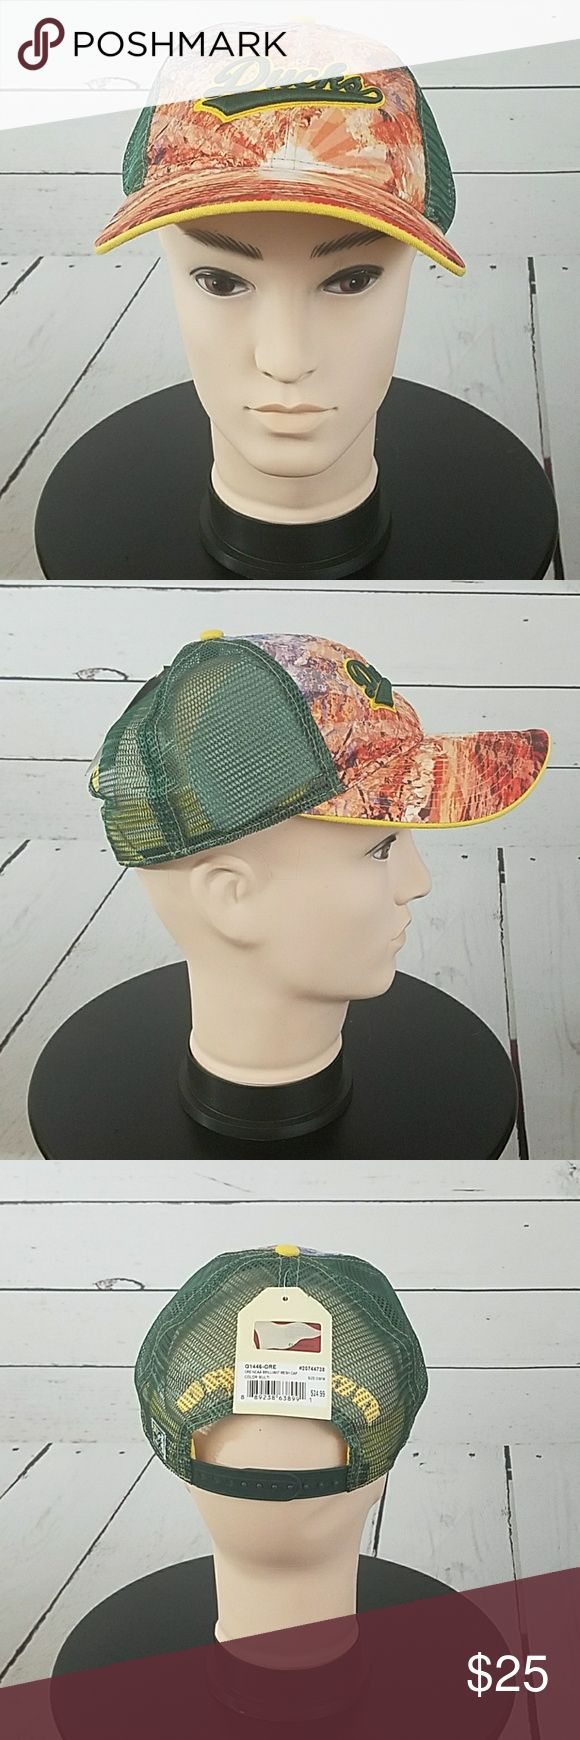 Oregon Ducks Splatter Hat Snap Back Adjustable. Oregon Ducks Splatter Hat Snap Back Adjustable. Brand New With Tags Game Time Accessories Hats